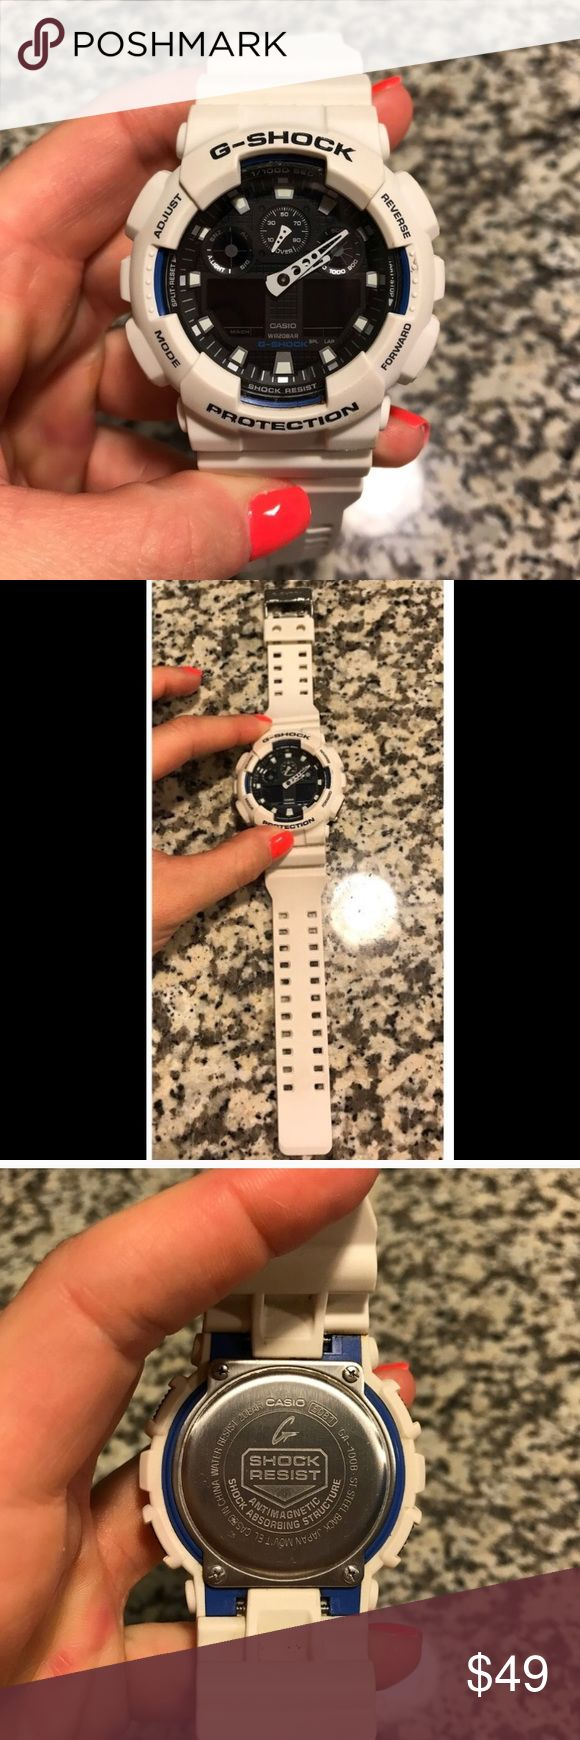 Men's white G-Shock watch Men's white G-Shock watch. Worn but in great shape. Battery is dead, needs new battery, usually $10. (Price reflects needing battery replaced) G-Shock Accessories Watches